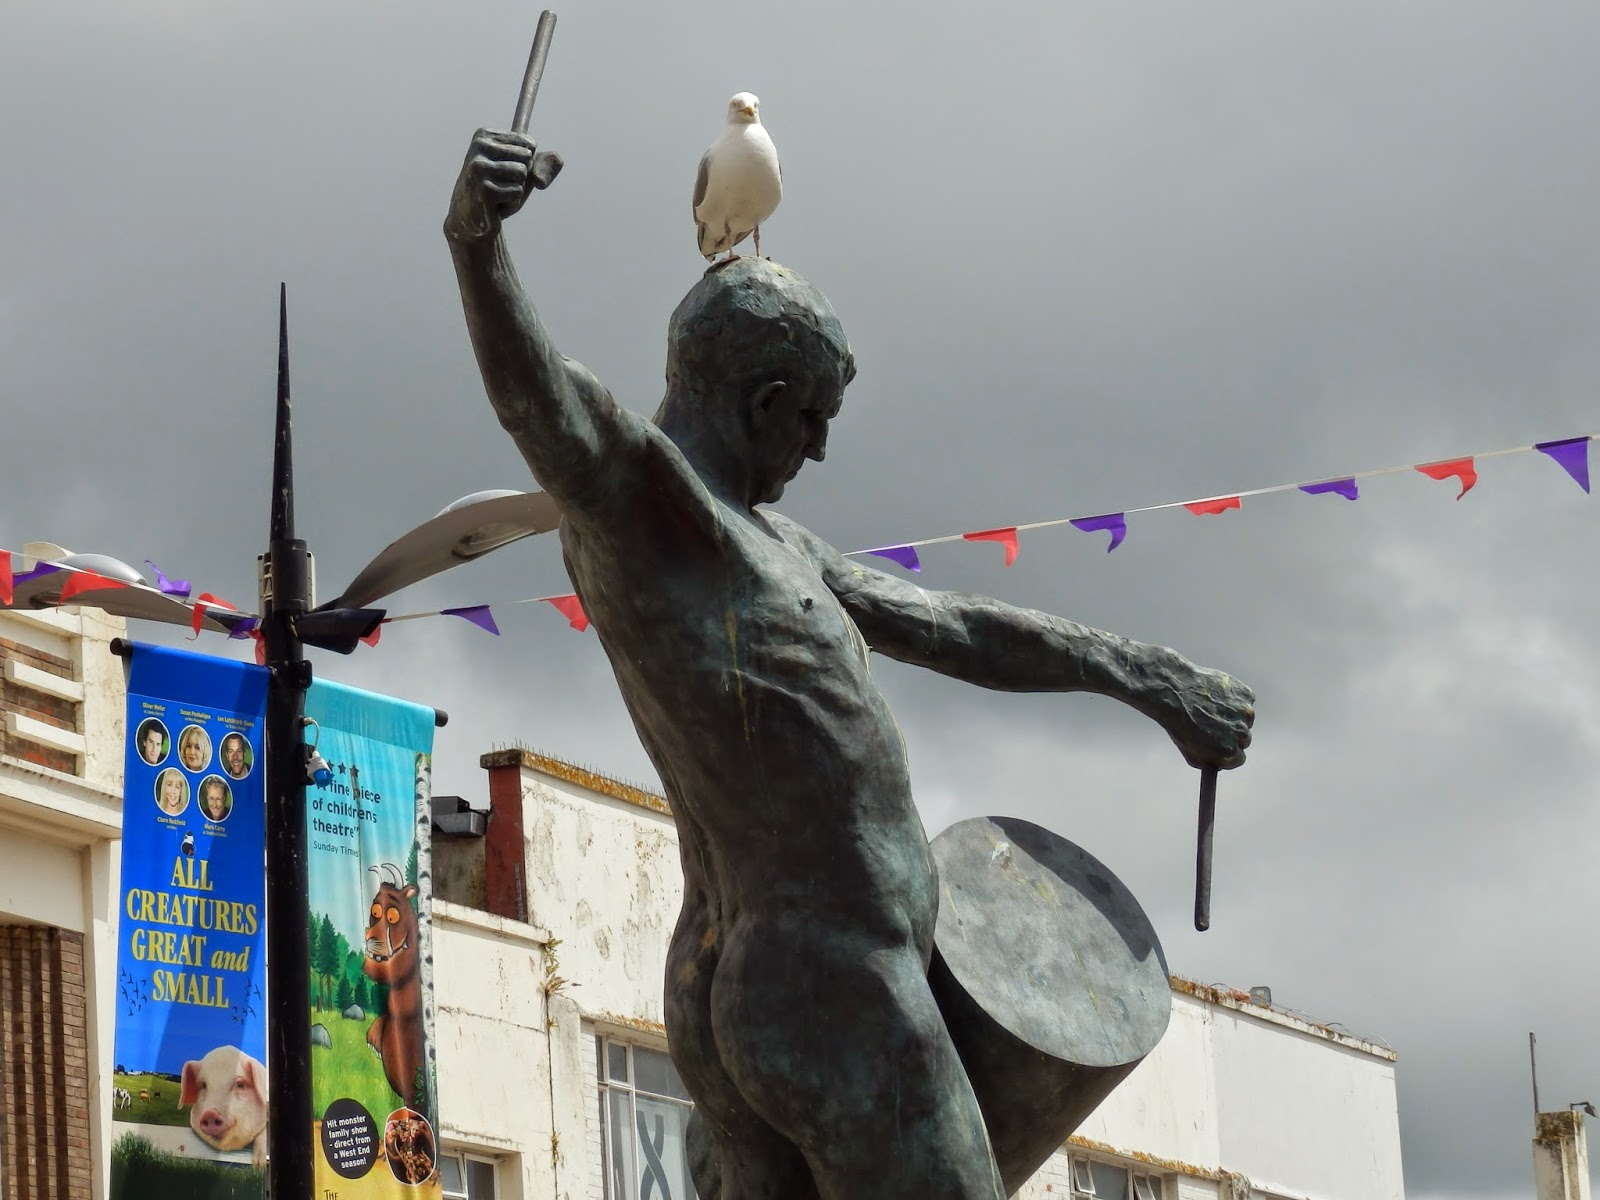 The naked drummer statue in Truro